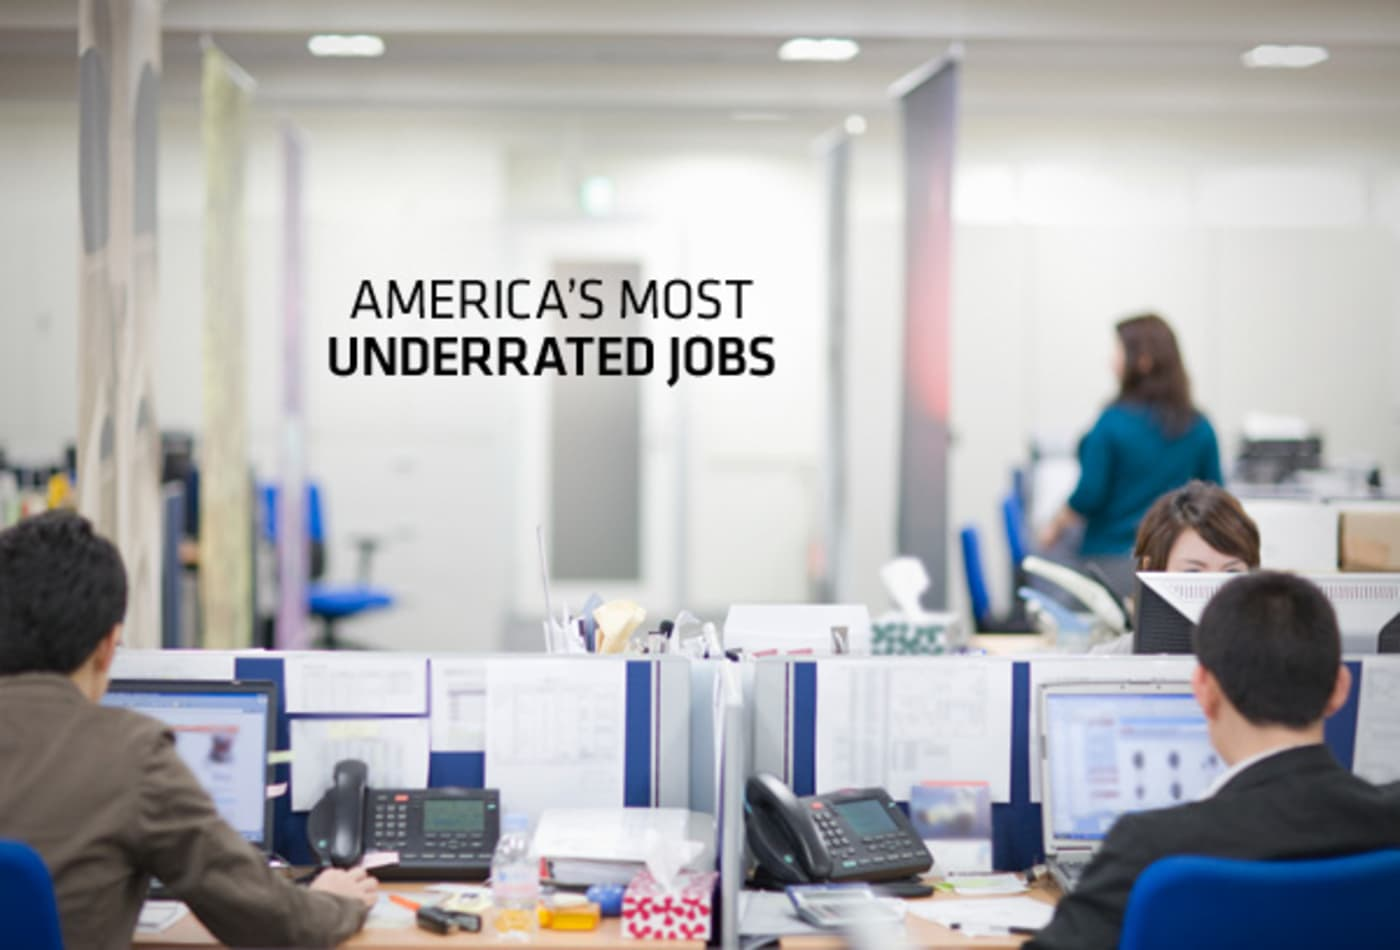 CNBC_Americas_underrated_jobs_cover.jpg